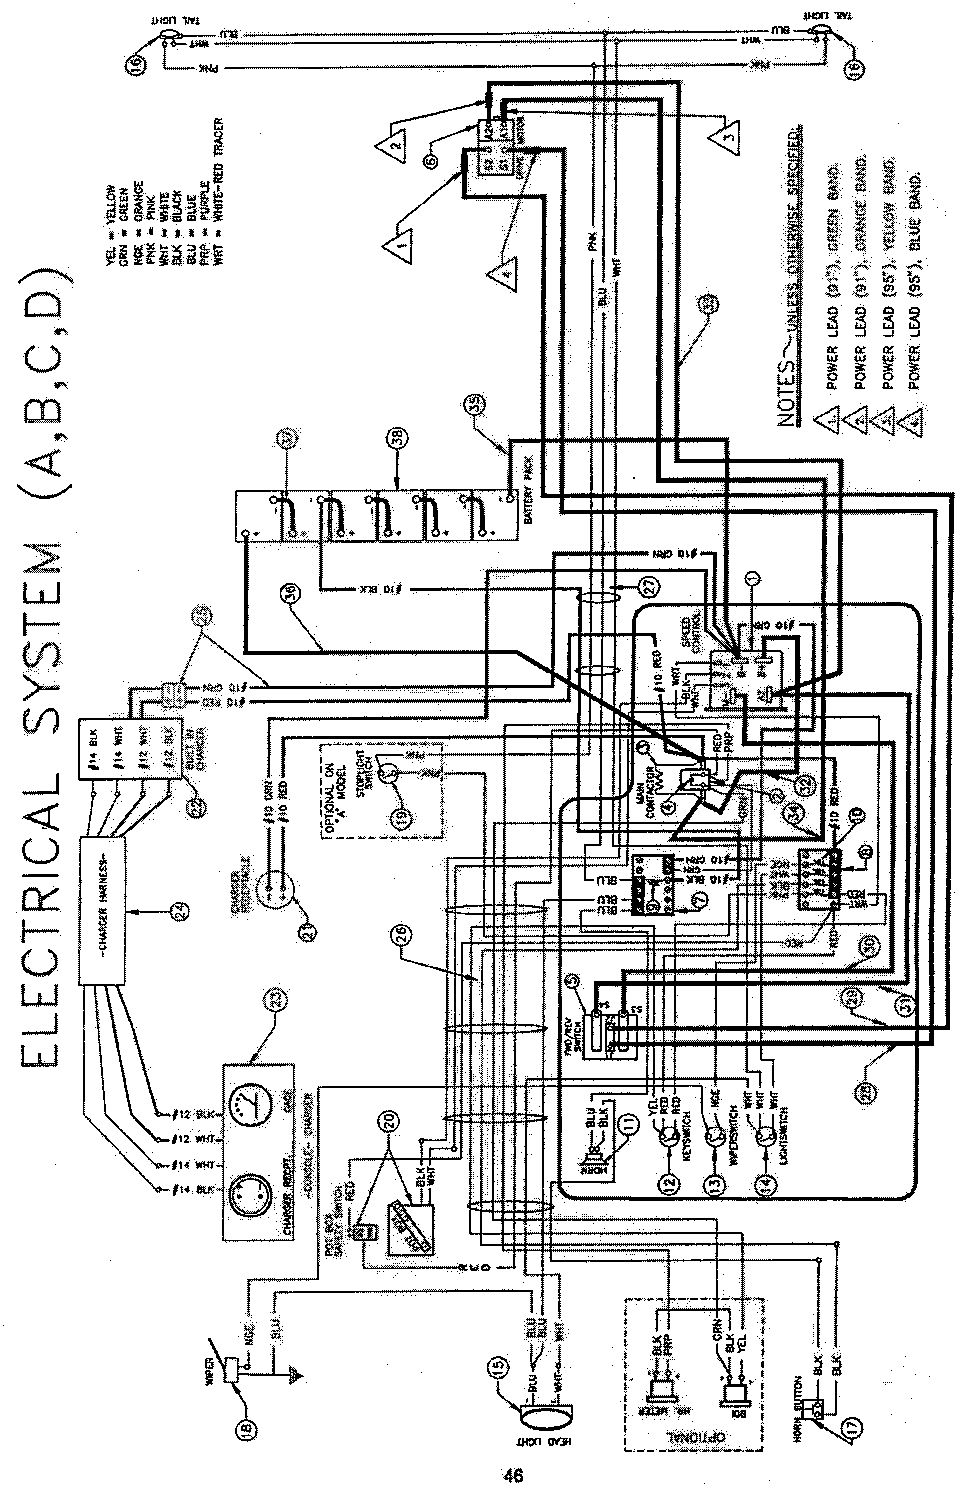 Nordskog280_92plus vintagegolfcartparts com westinghouse golf cart wiring diagram at gsmx.co